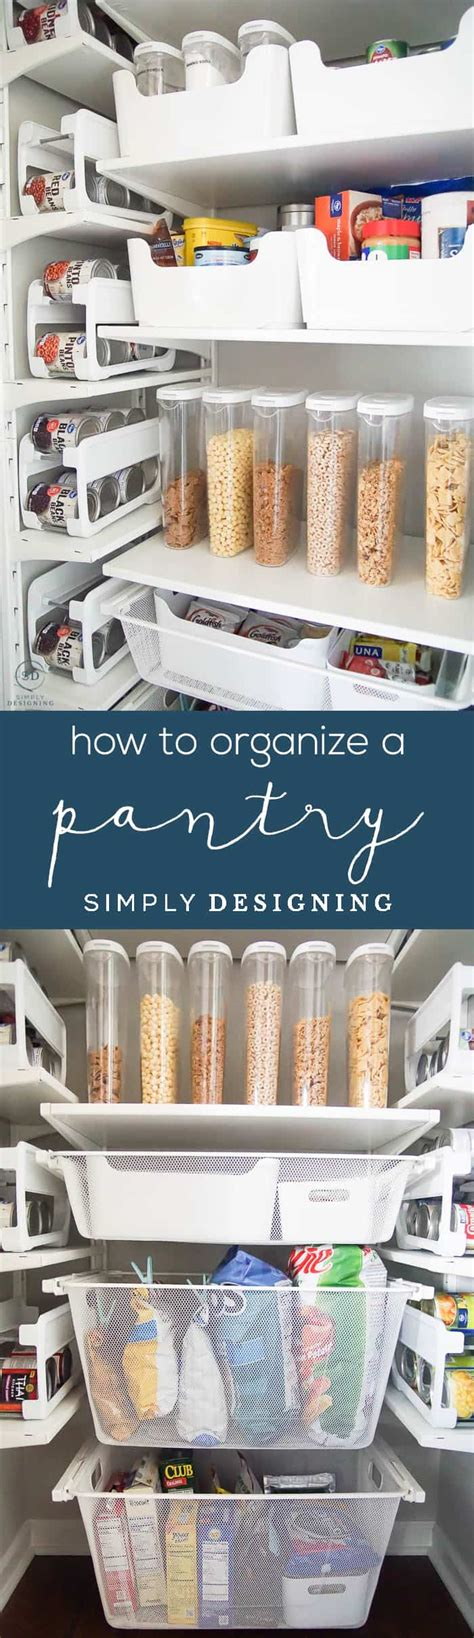 how to organise kitchen storage how to organize a closet the stairs pantry 7293